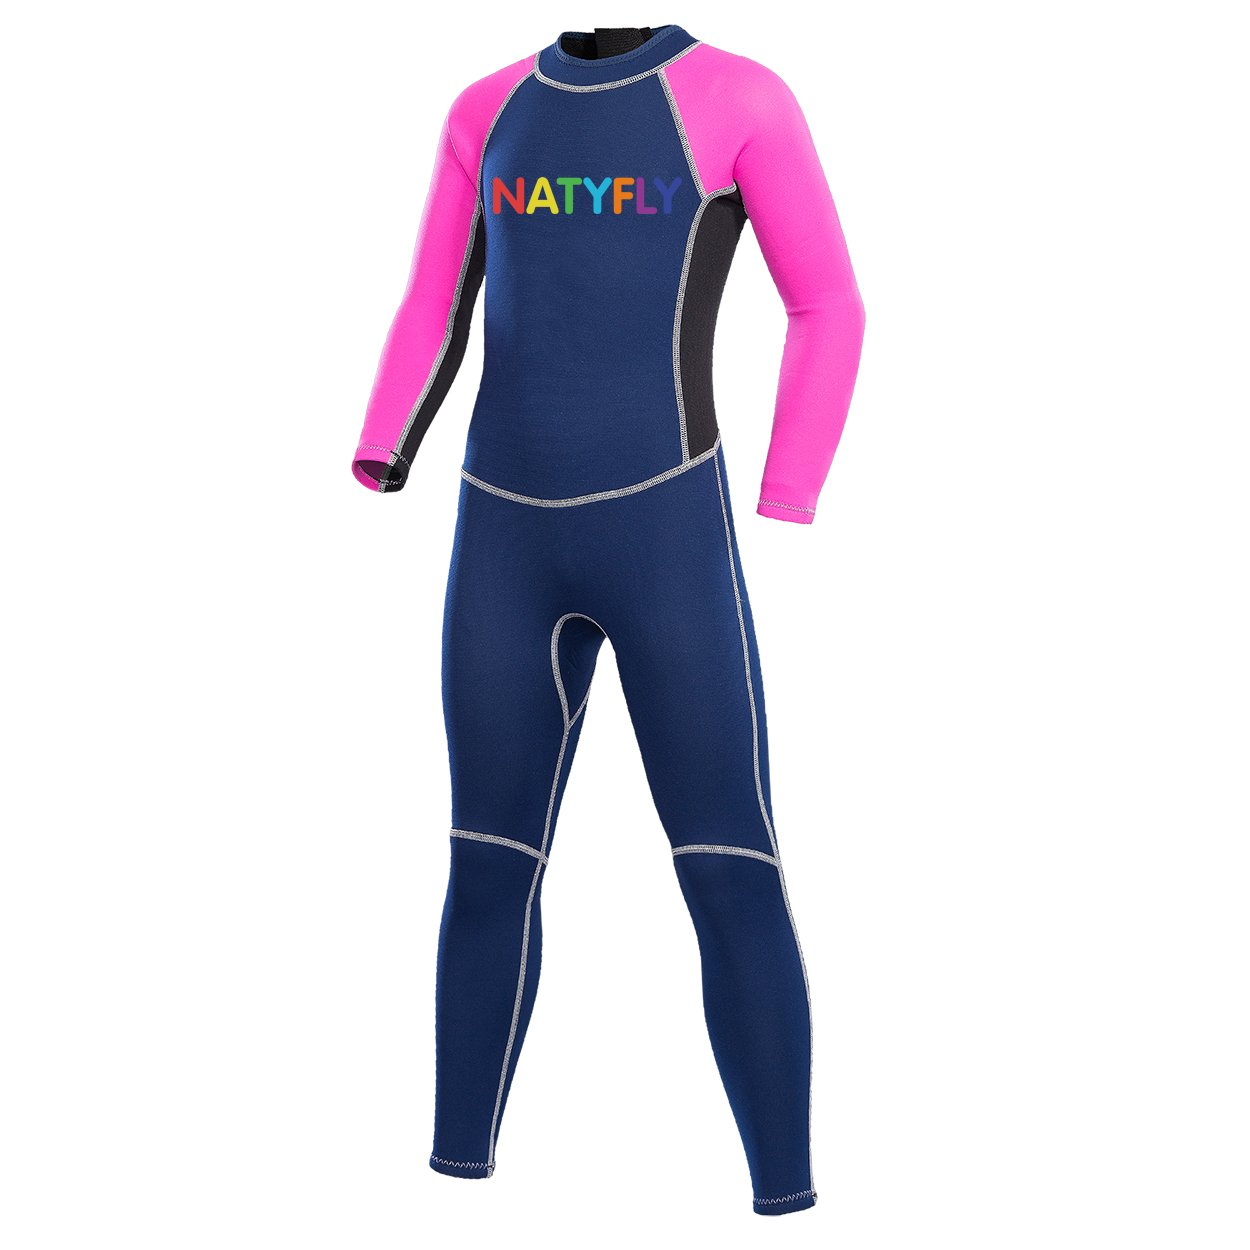 NATYFLY Neoprene Wetsuits for Kids Boys Girls Back Zipper One Piece Swimsuit UV Protection-Brand (Pink-2MM-Long Sleeve, XS-for Height 32''-37'')